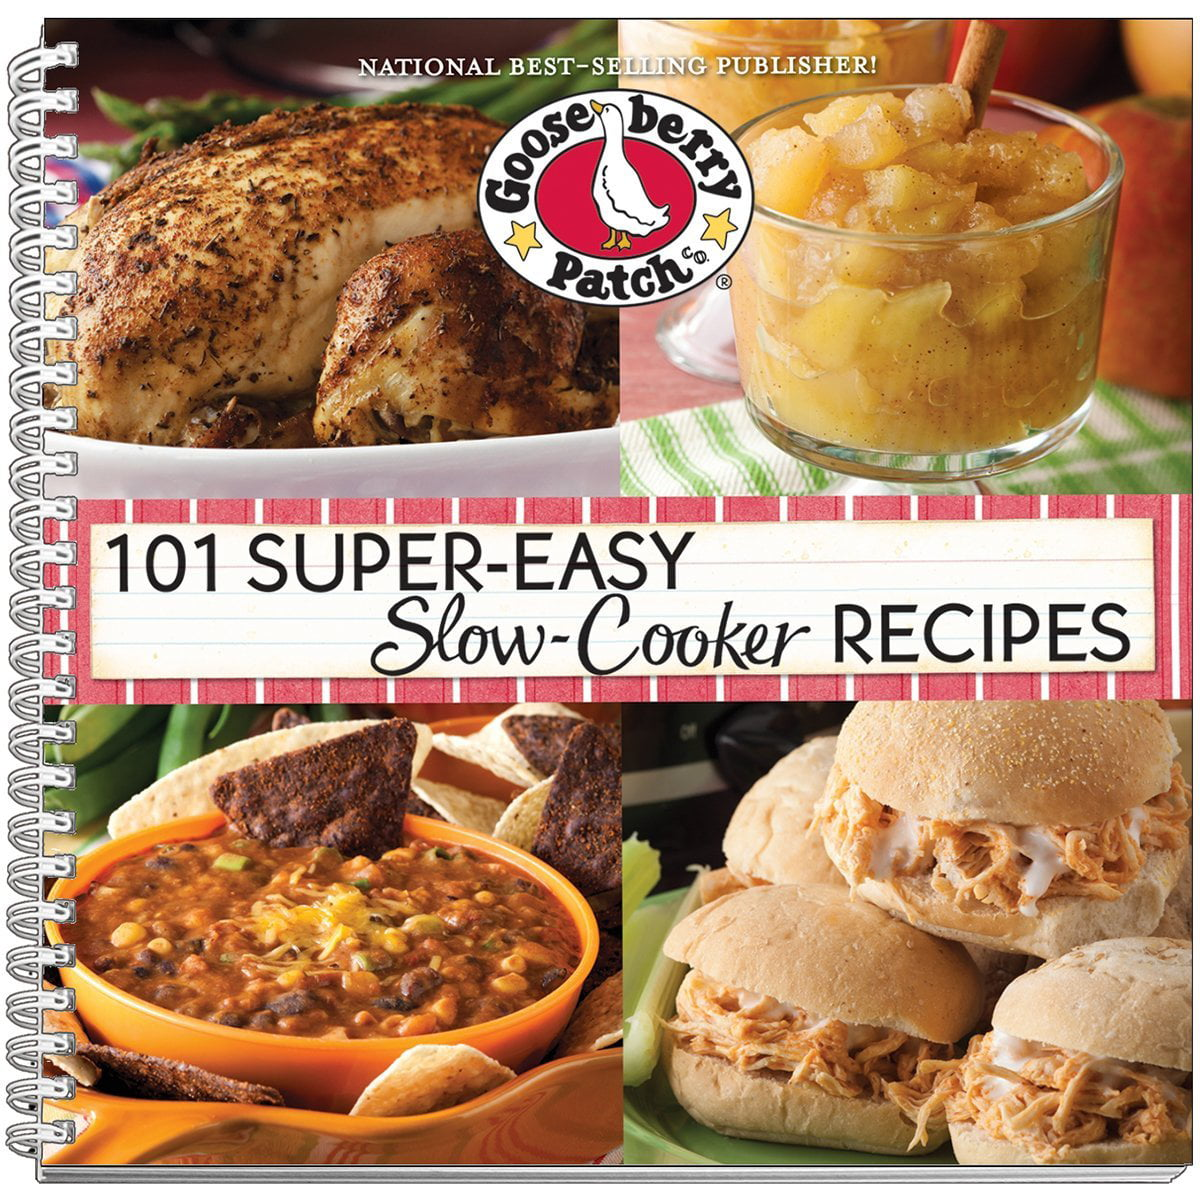 101 Super Easy Slow Cooker Recipes-, 101 Super Easy Slow Cooker Recipes- By Gooseberry Patch by